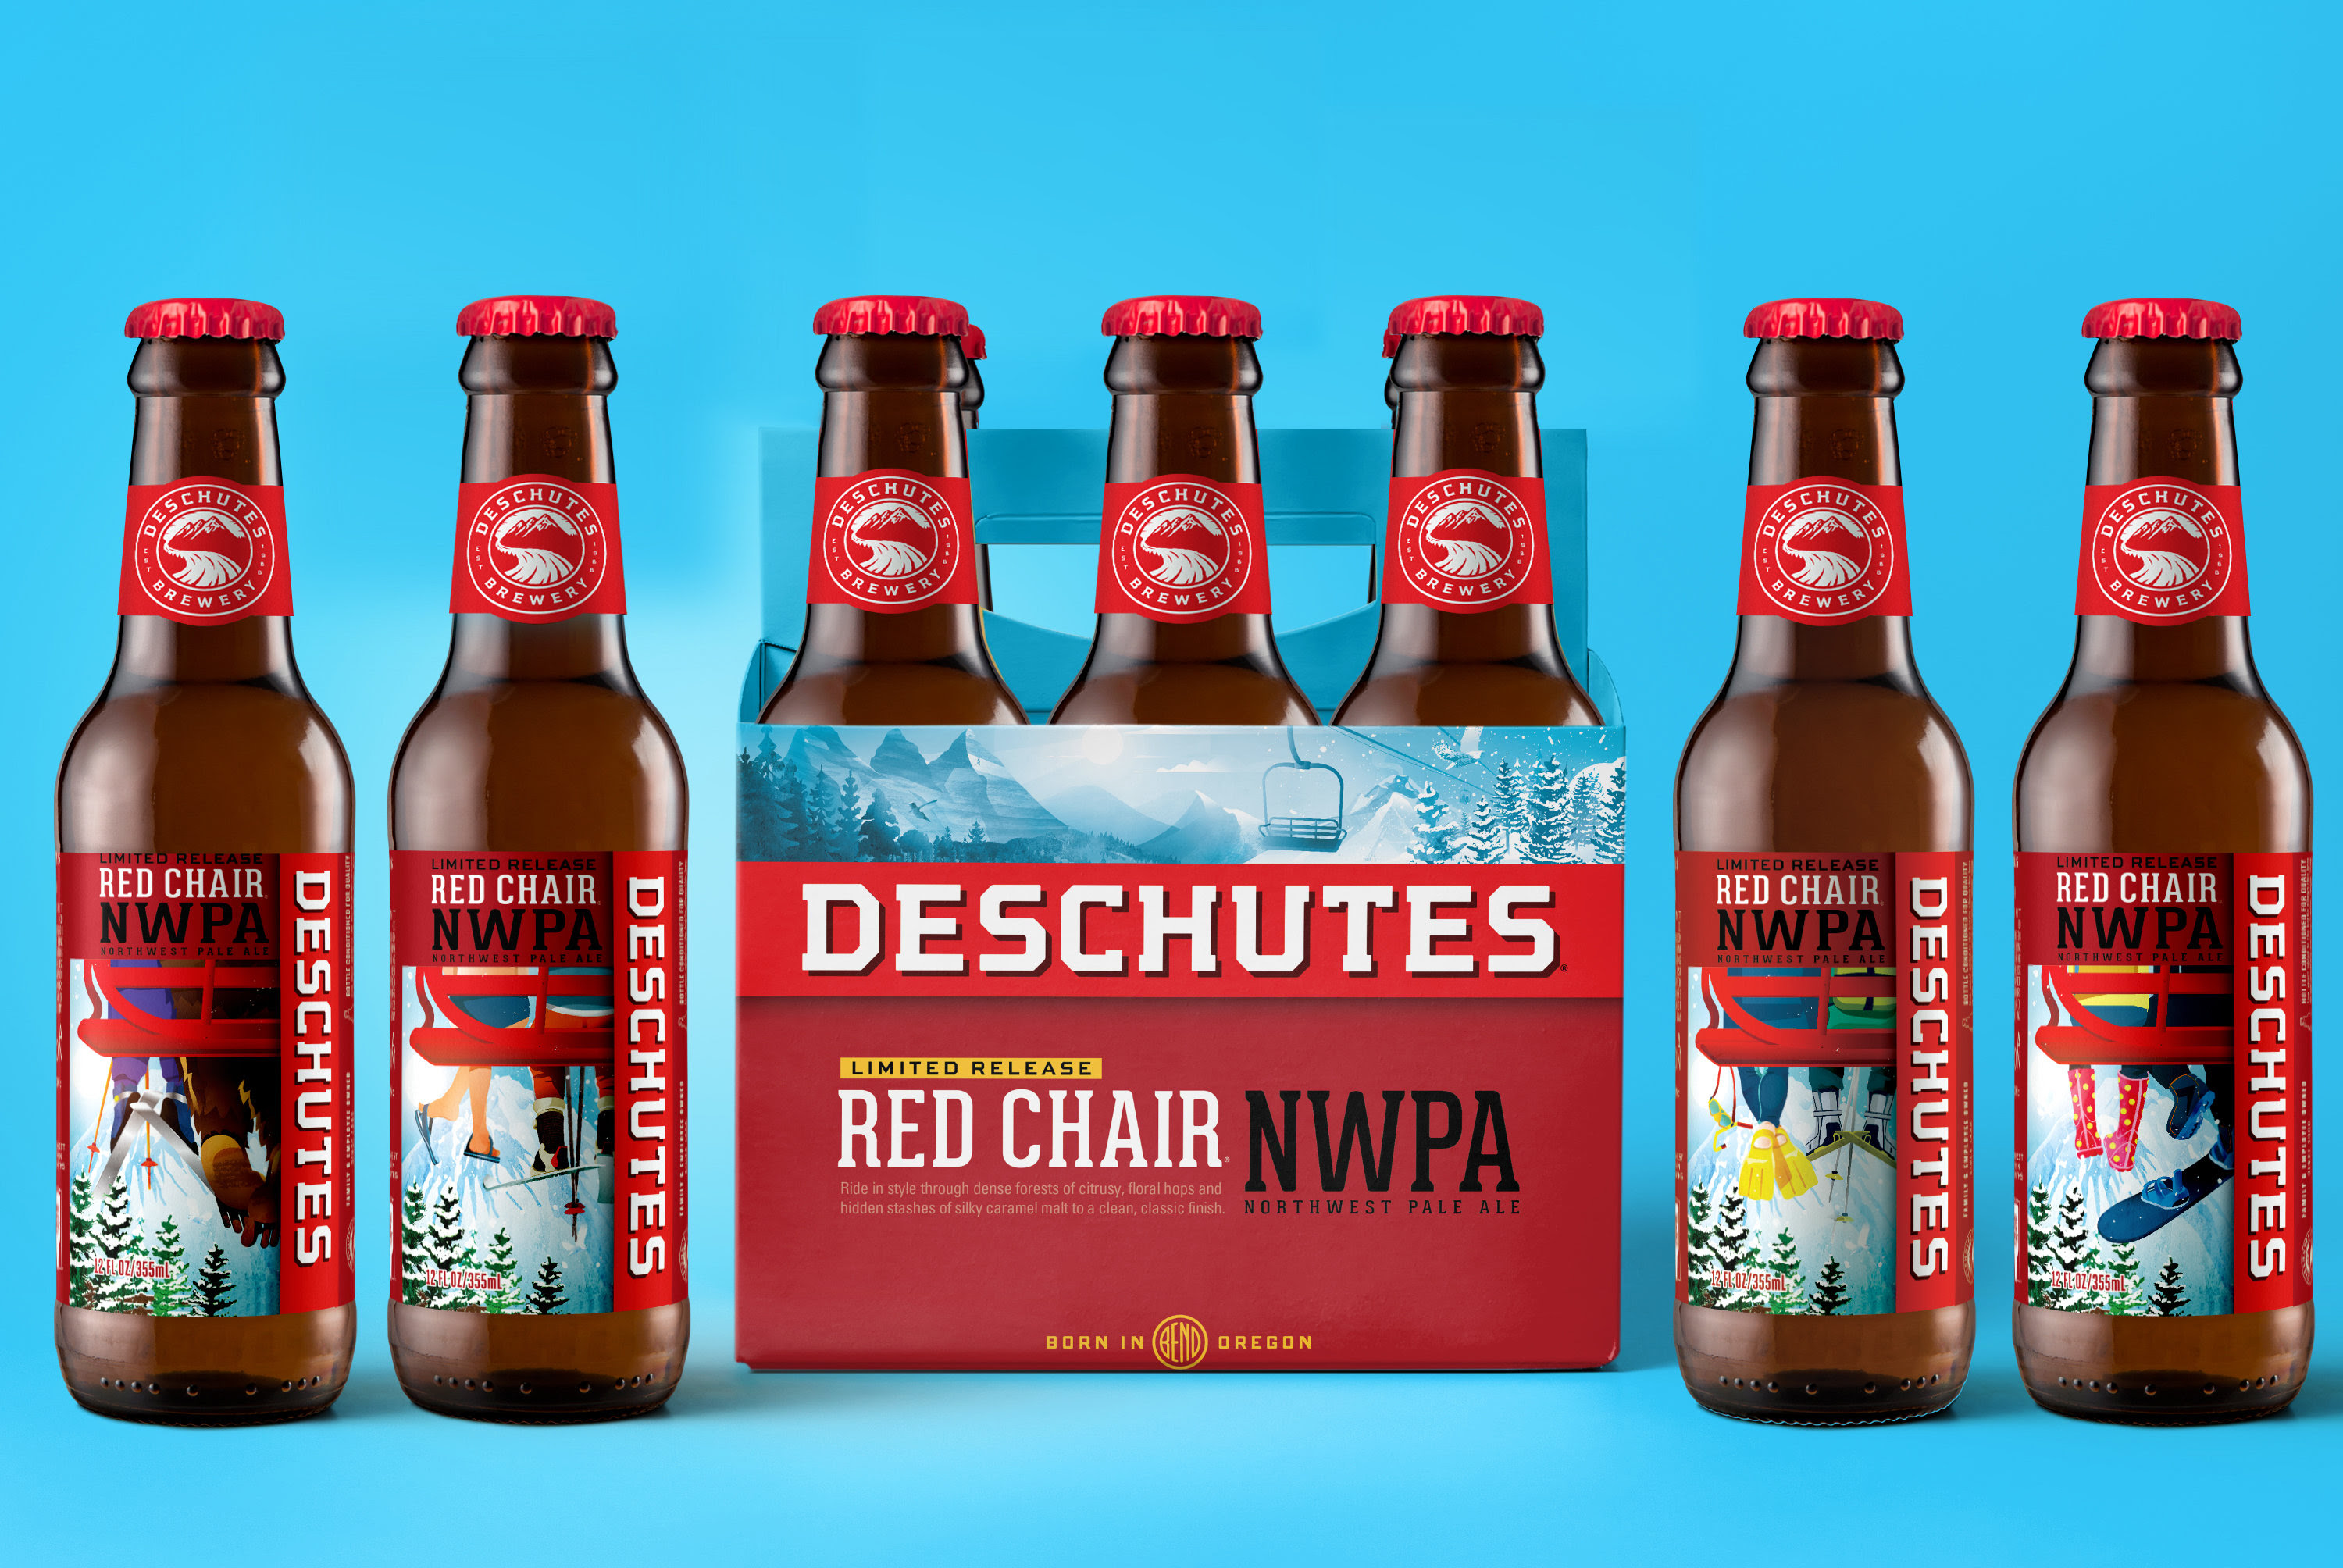 deschutes red chair nwpa beer advocate golden inc brewery refreshes its packaging in 2019